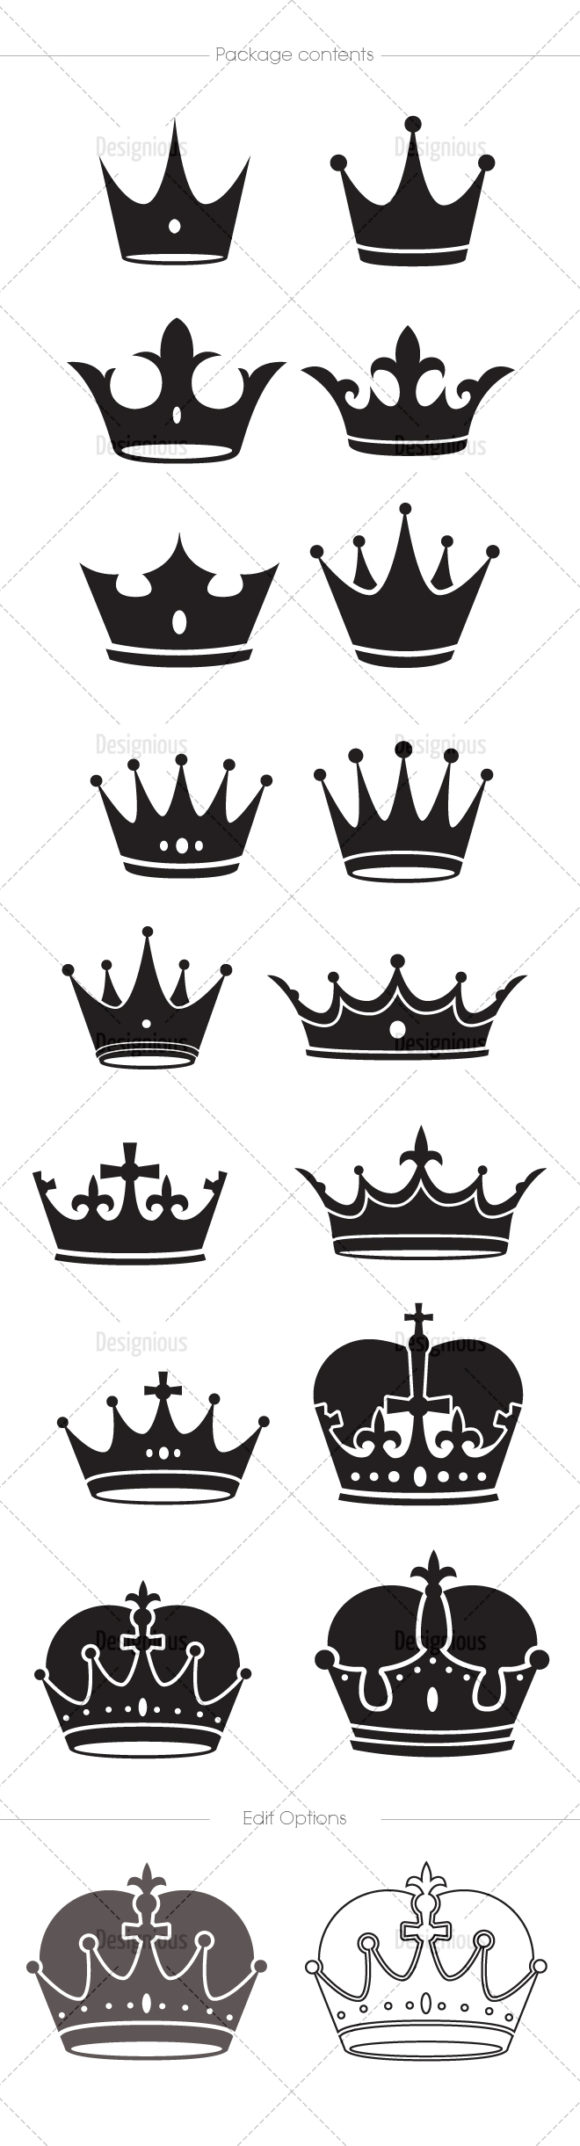 Crowns Vector Pack 5 products designious vector crowns 5 large